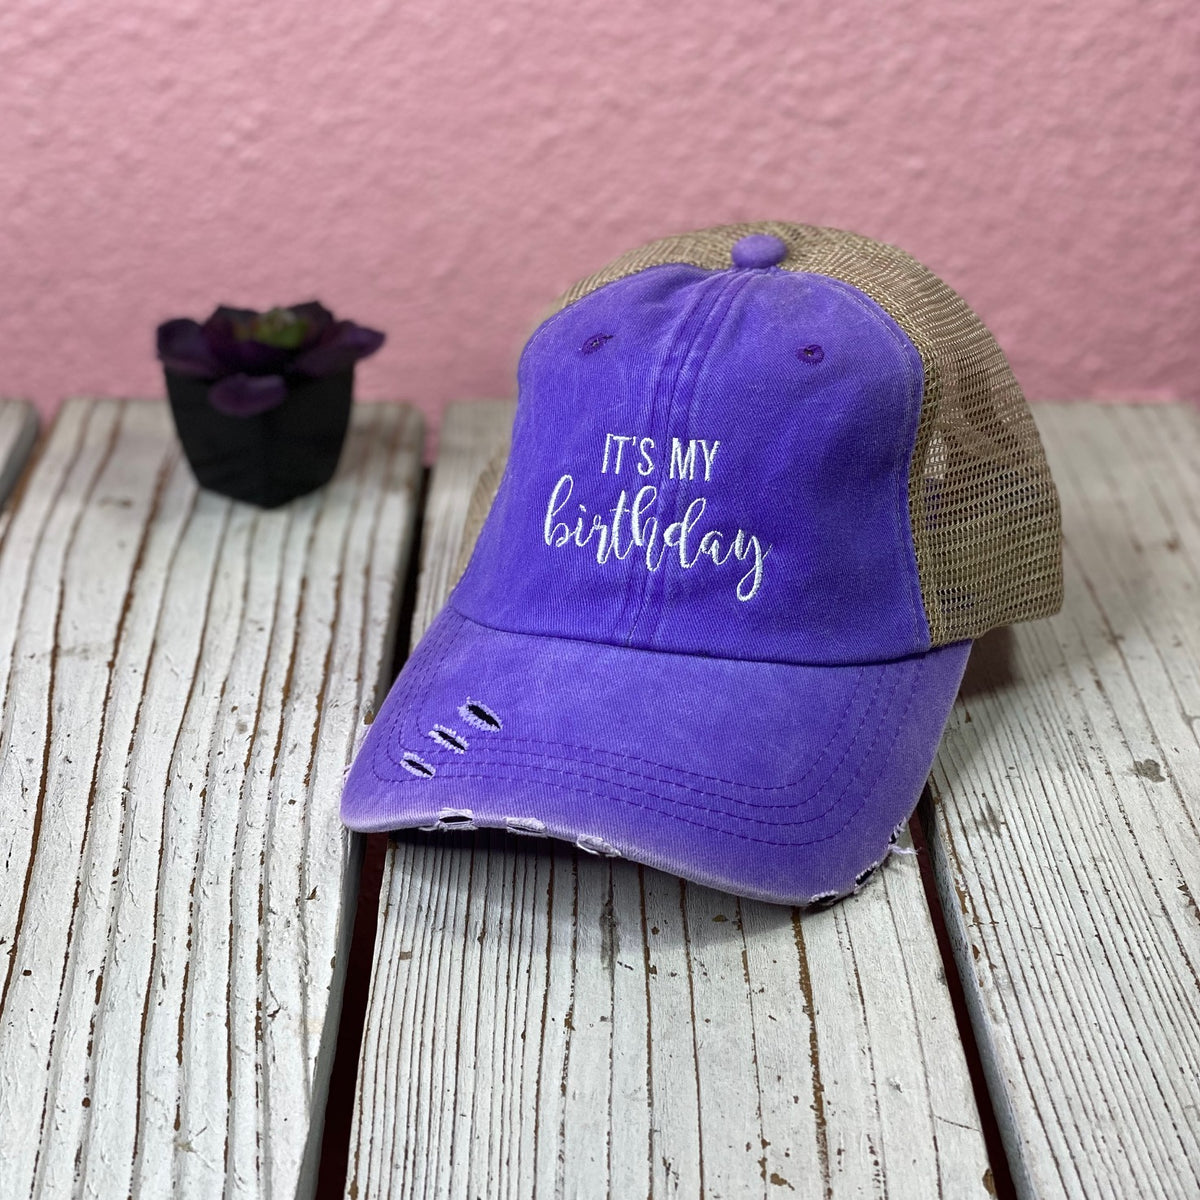 It's My Birthday Trucker Hat - Prfcto Lifestyle